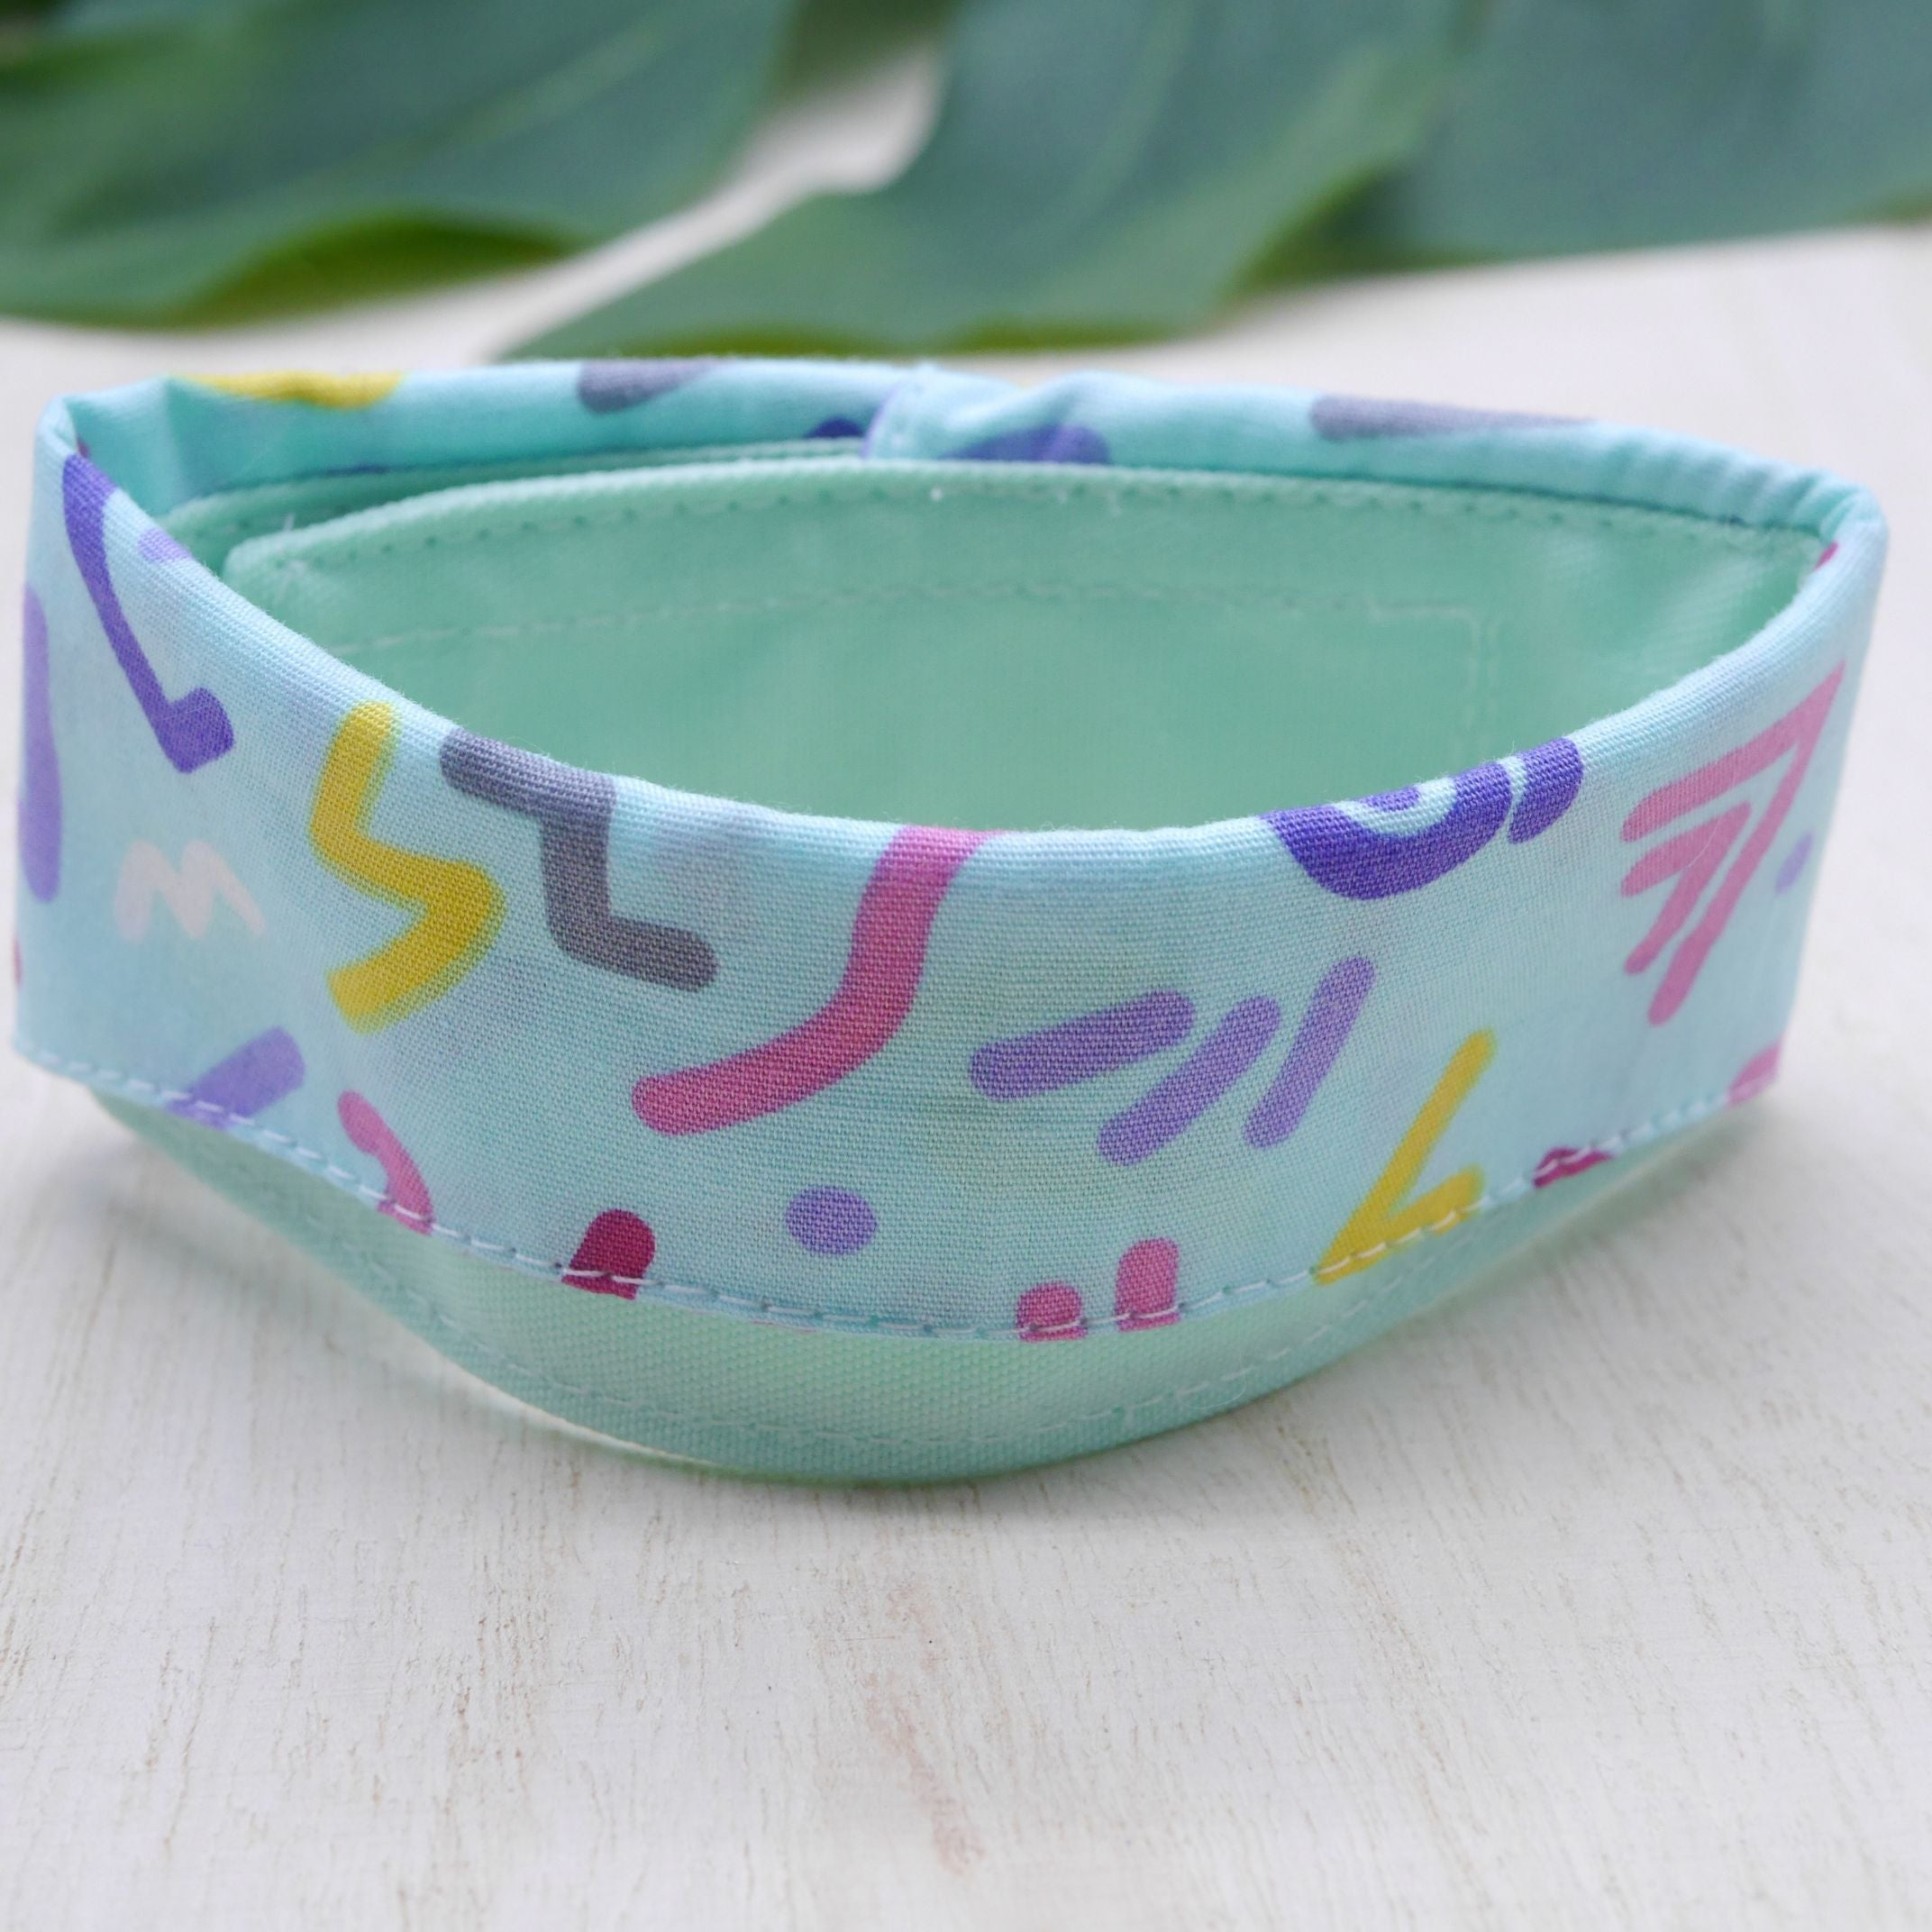 Dapper Collar - Pastel Blue - The Pet's Couture